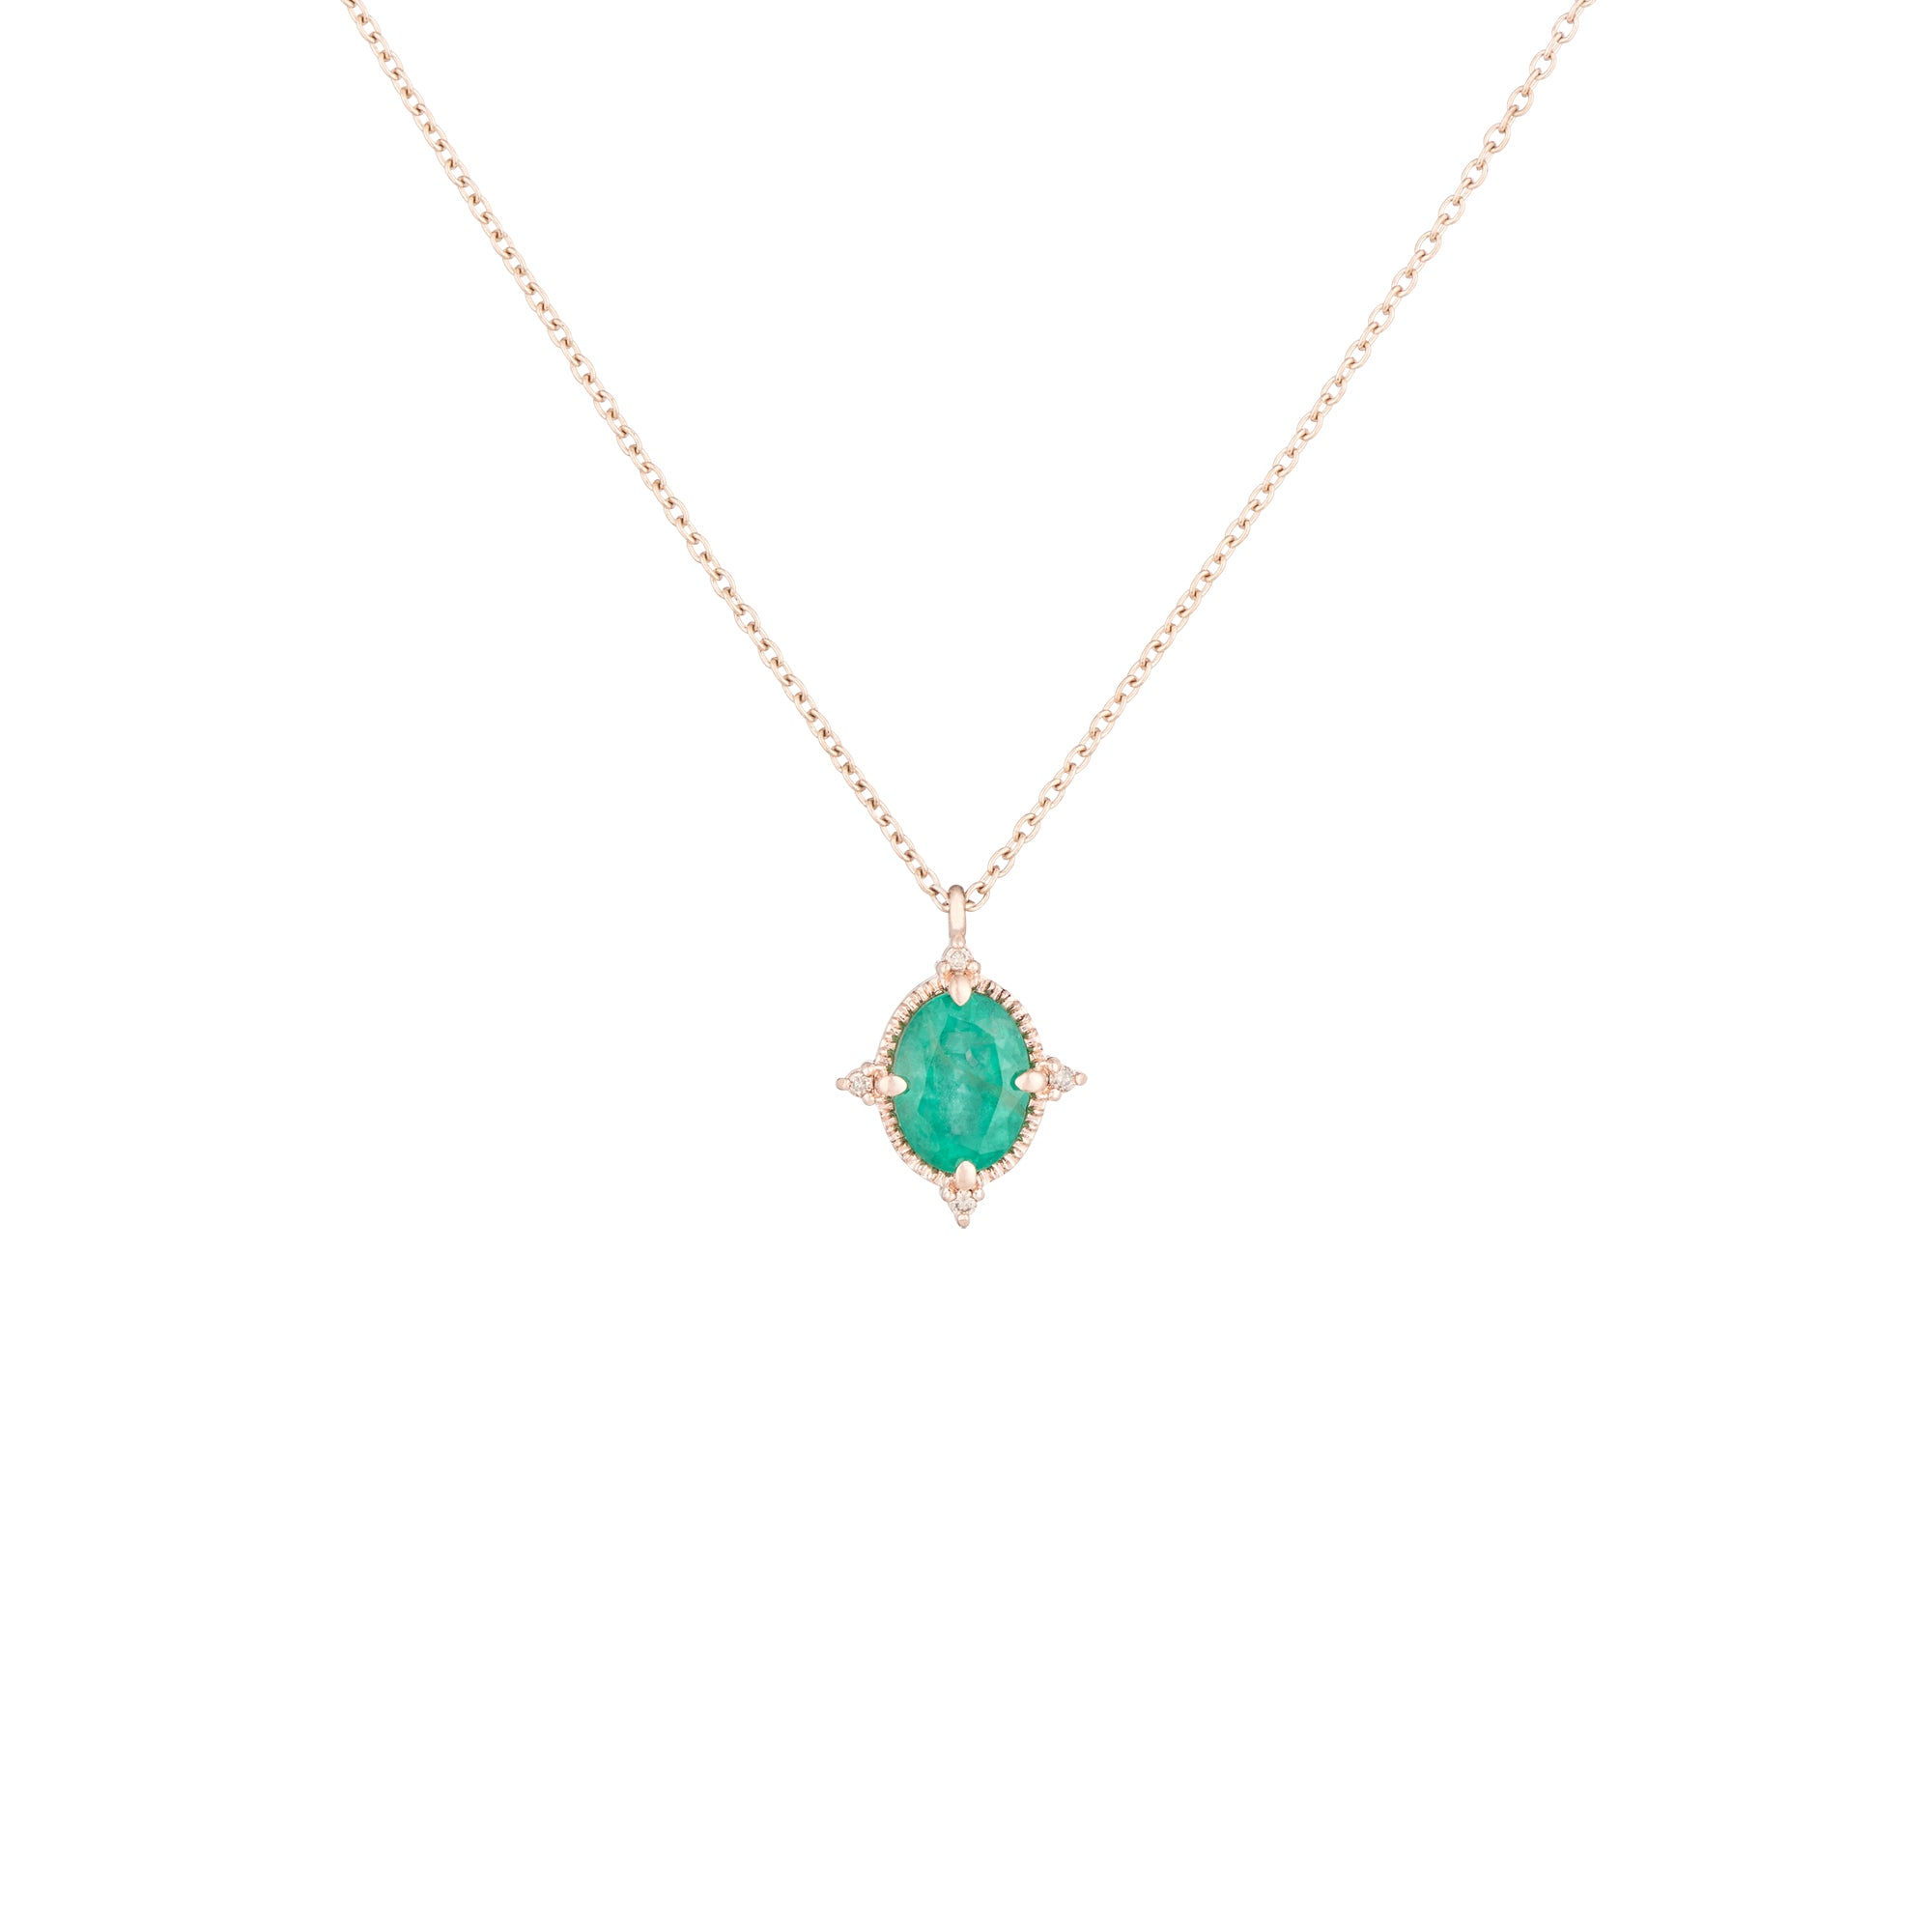 gold img in kikai brilliant chinchar rose with cut white maloney form emerald carat eight light free yellow necklace